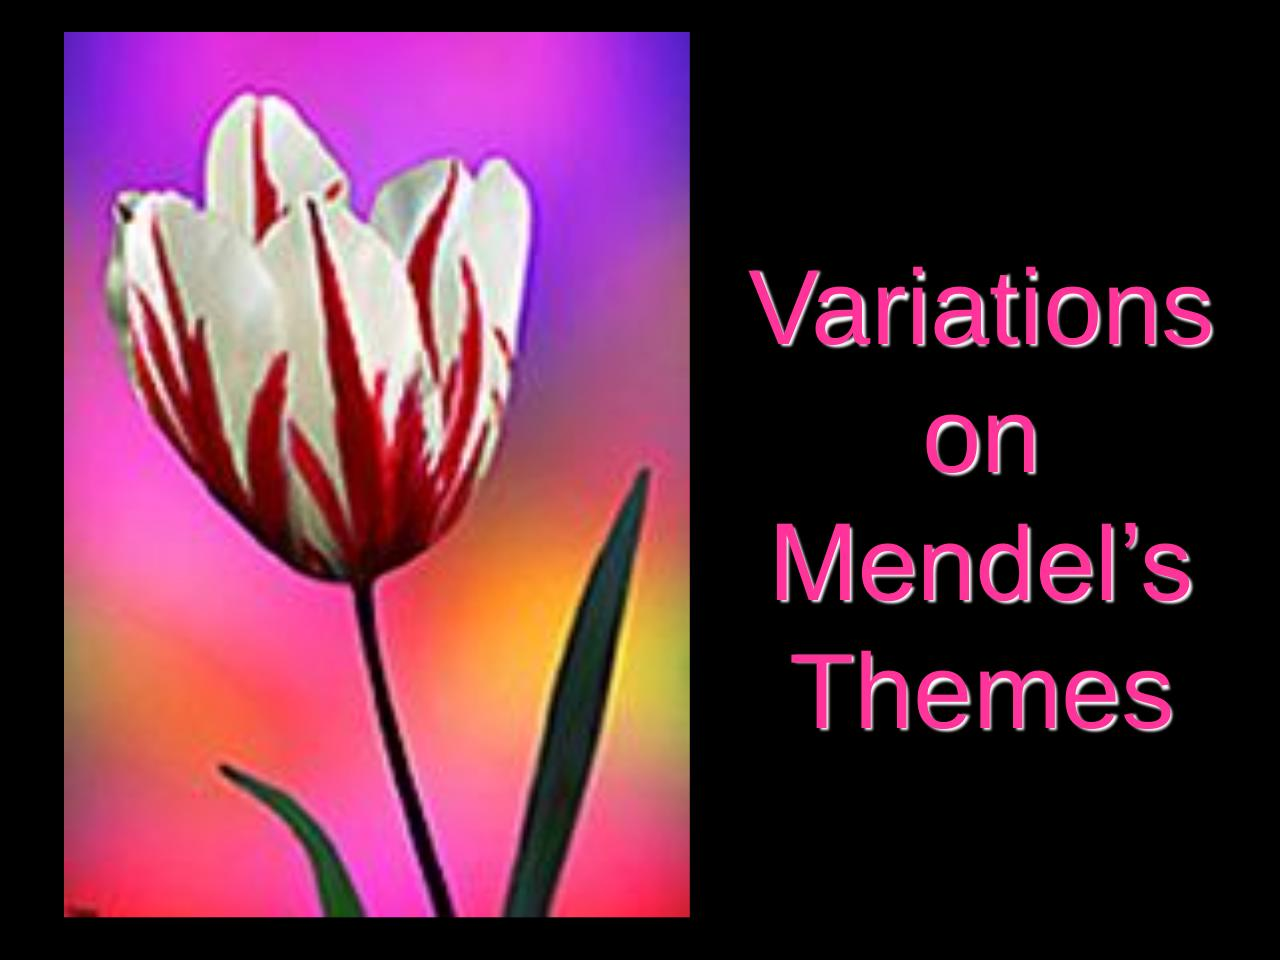 17 variations on Mendels Themes.pdf - page 1/24